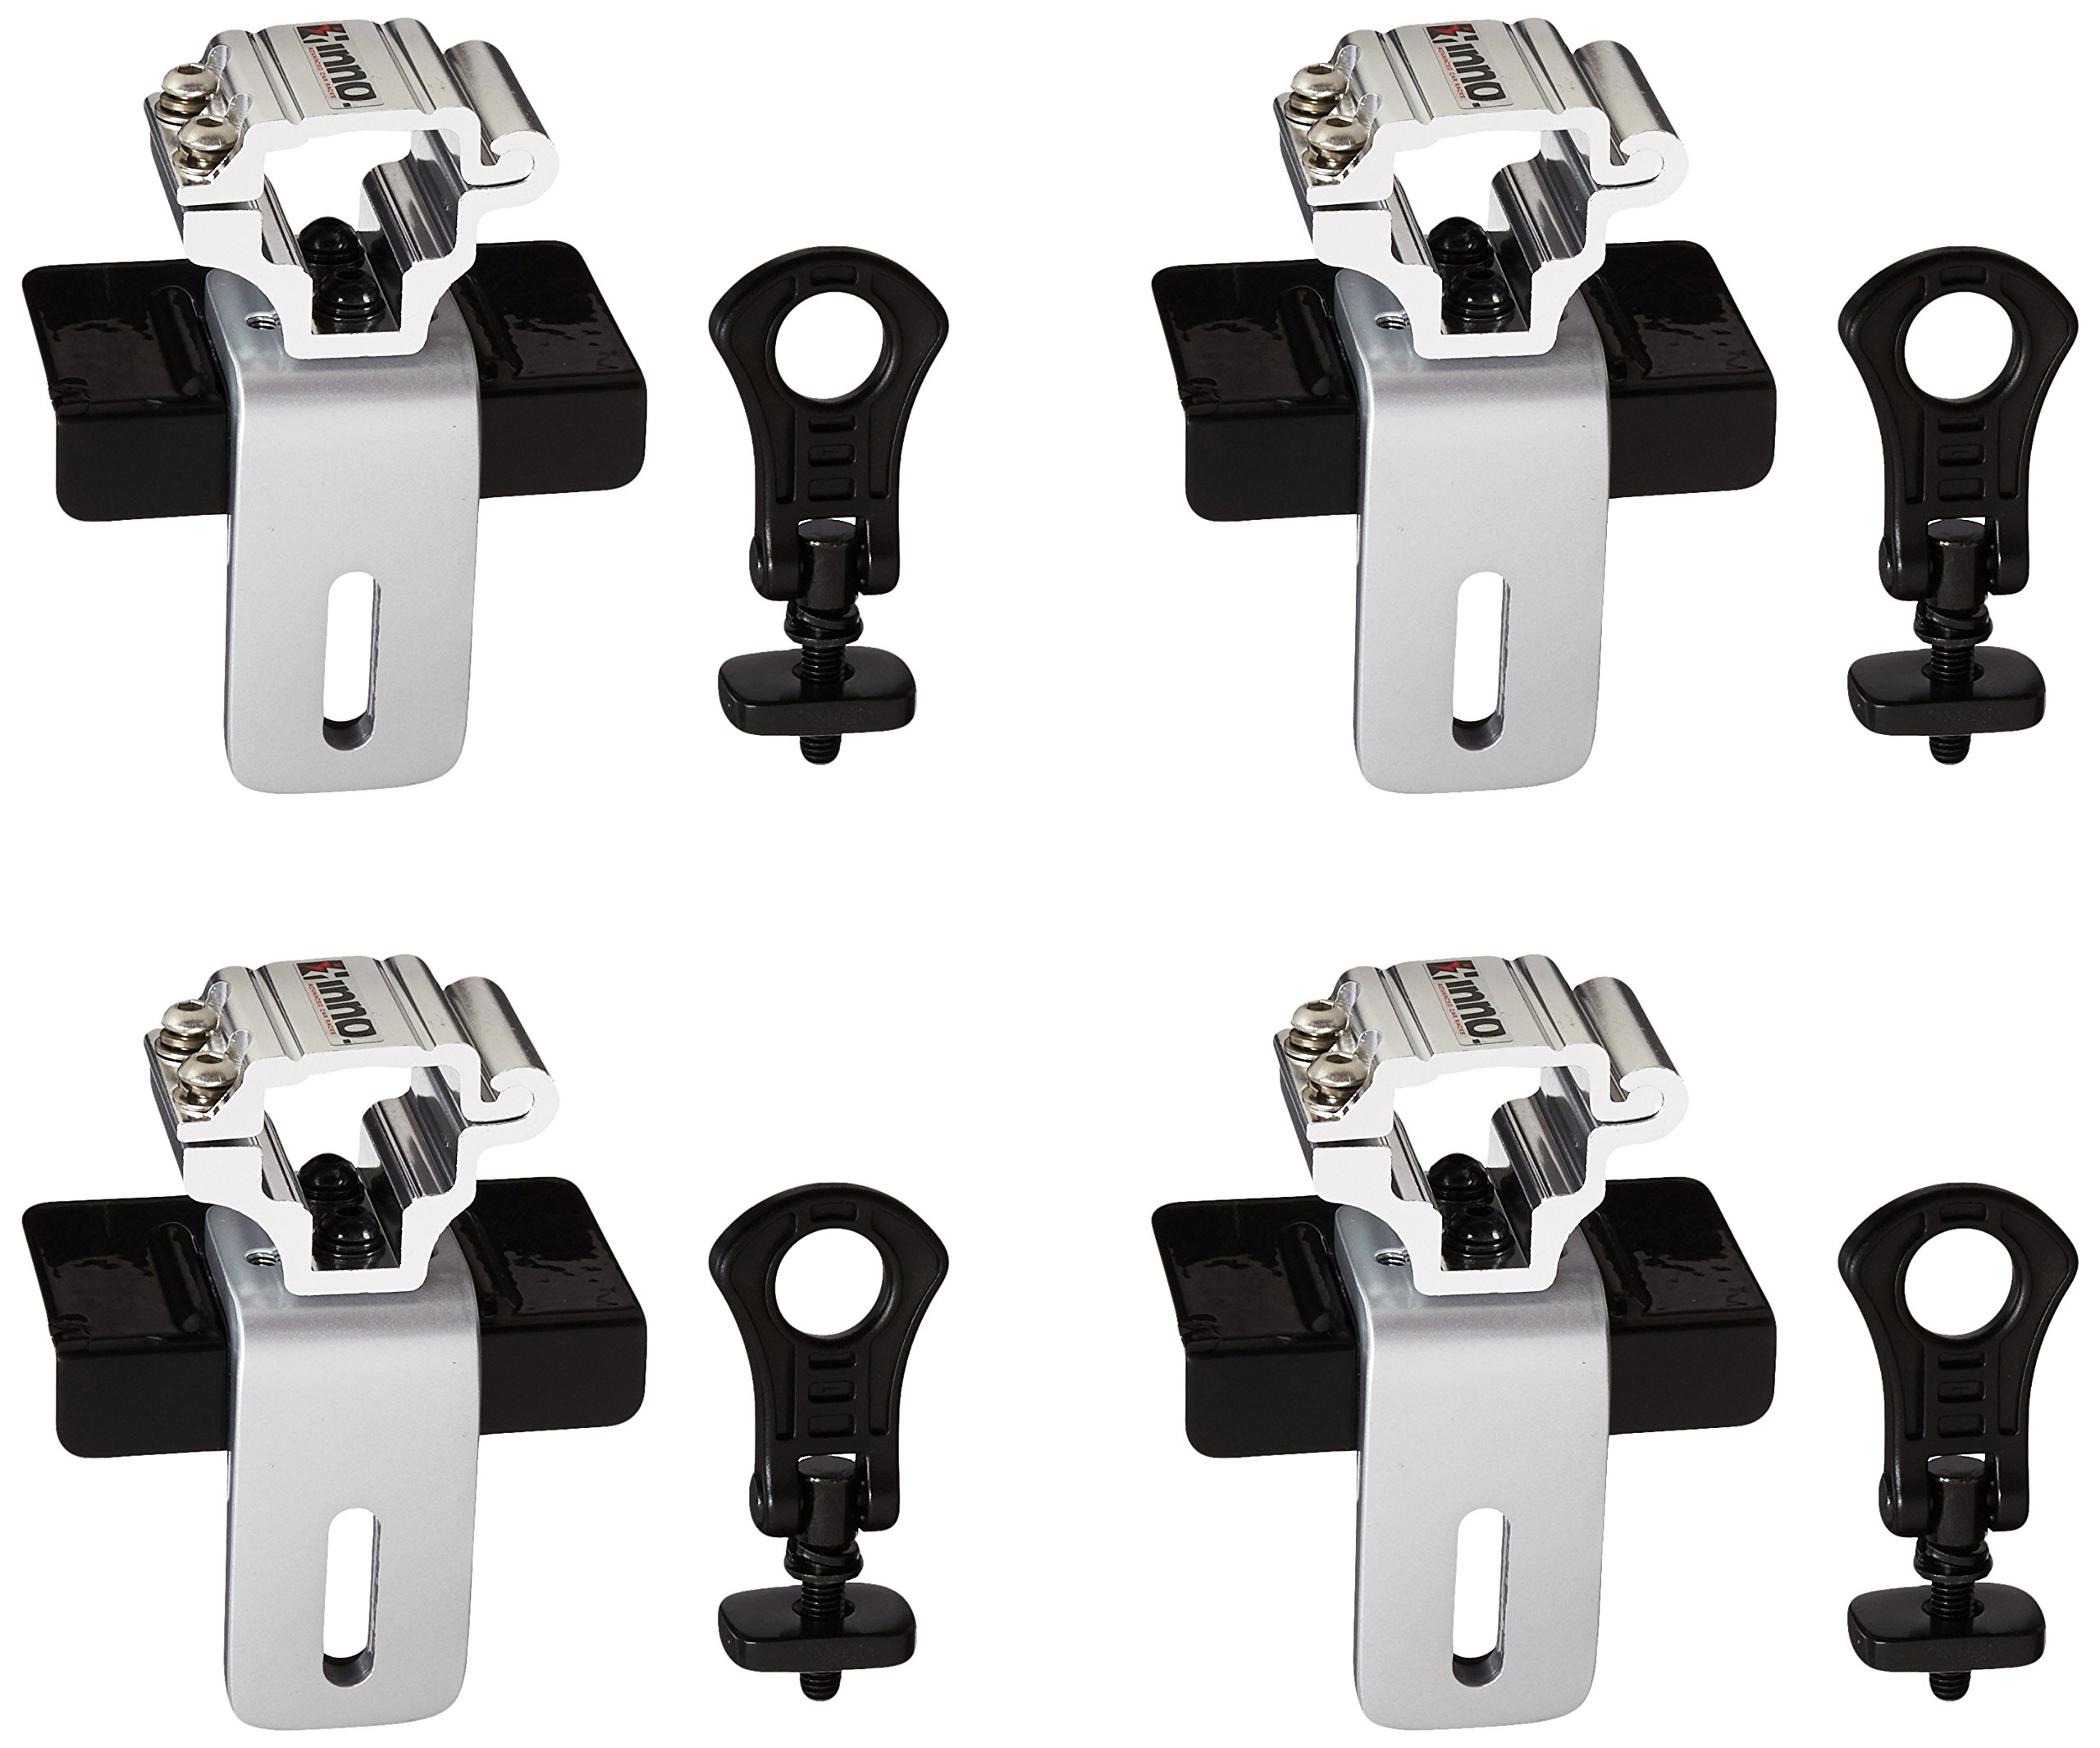 Inno Truck Rack Stays for Truck Beds with C-Channel Tracks (Set of 4) by INNO (Image #1)